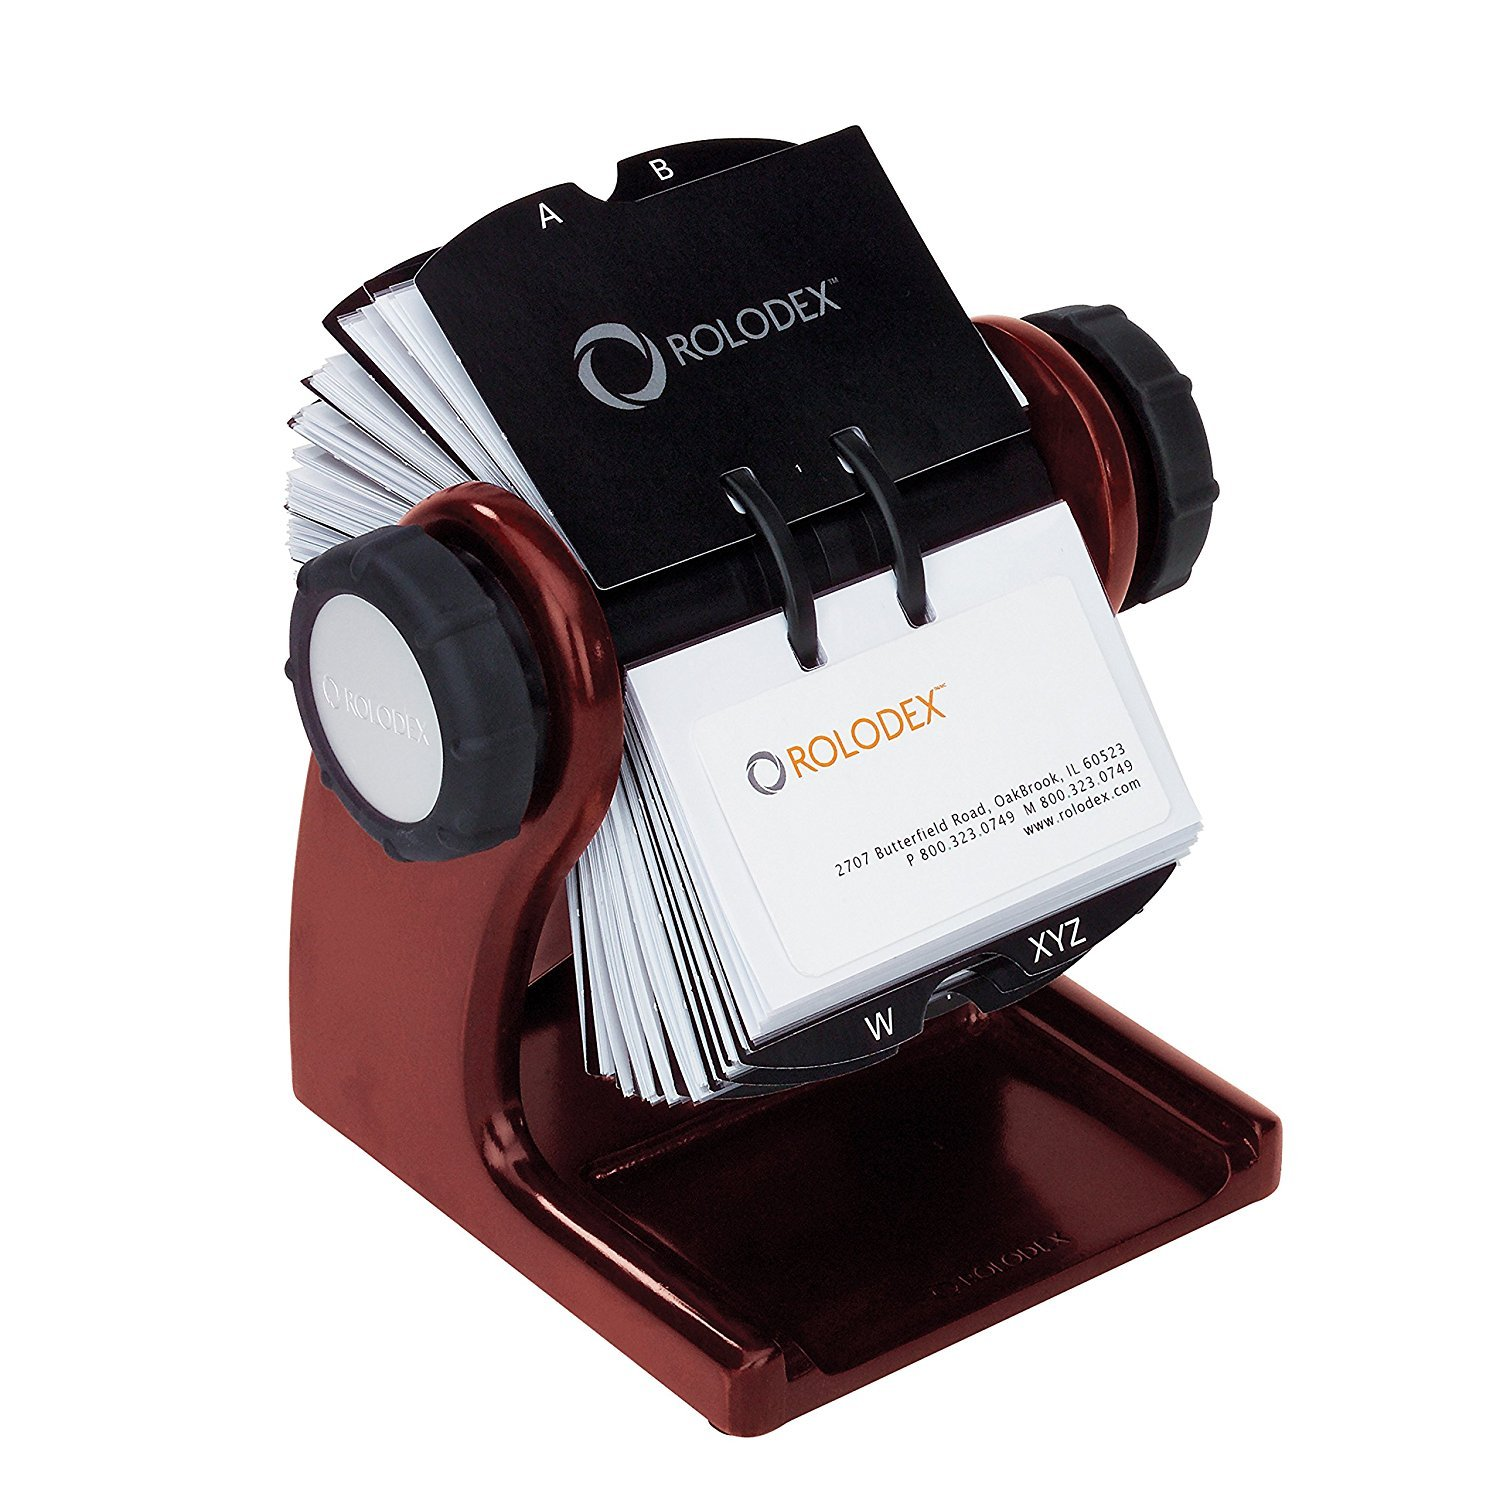 Rolodex Wood Tones Collection Open Rotary Business Card File (2.63 by 4 Inch), 200-Card, Mahogany (1734242) 2-Pack